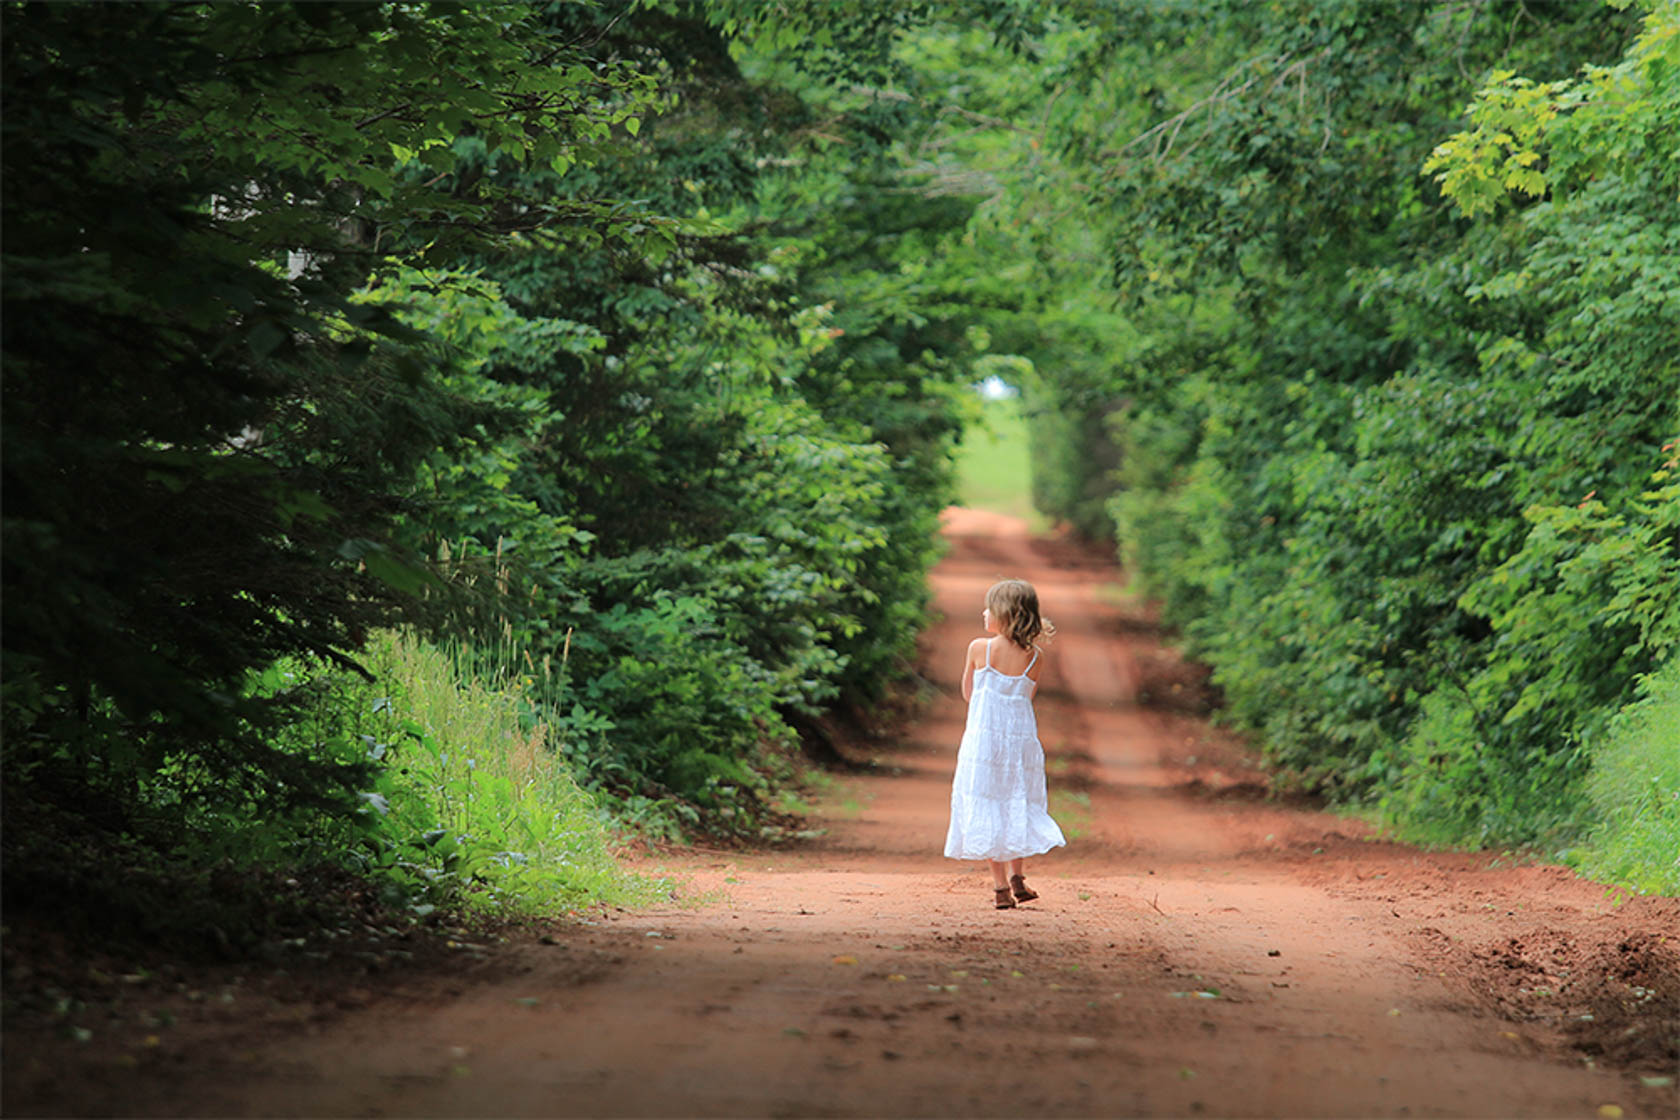 Young girl walking down a dirt road shot on Canon EOS M10 Compact System Camera